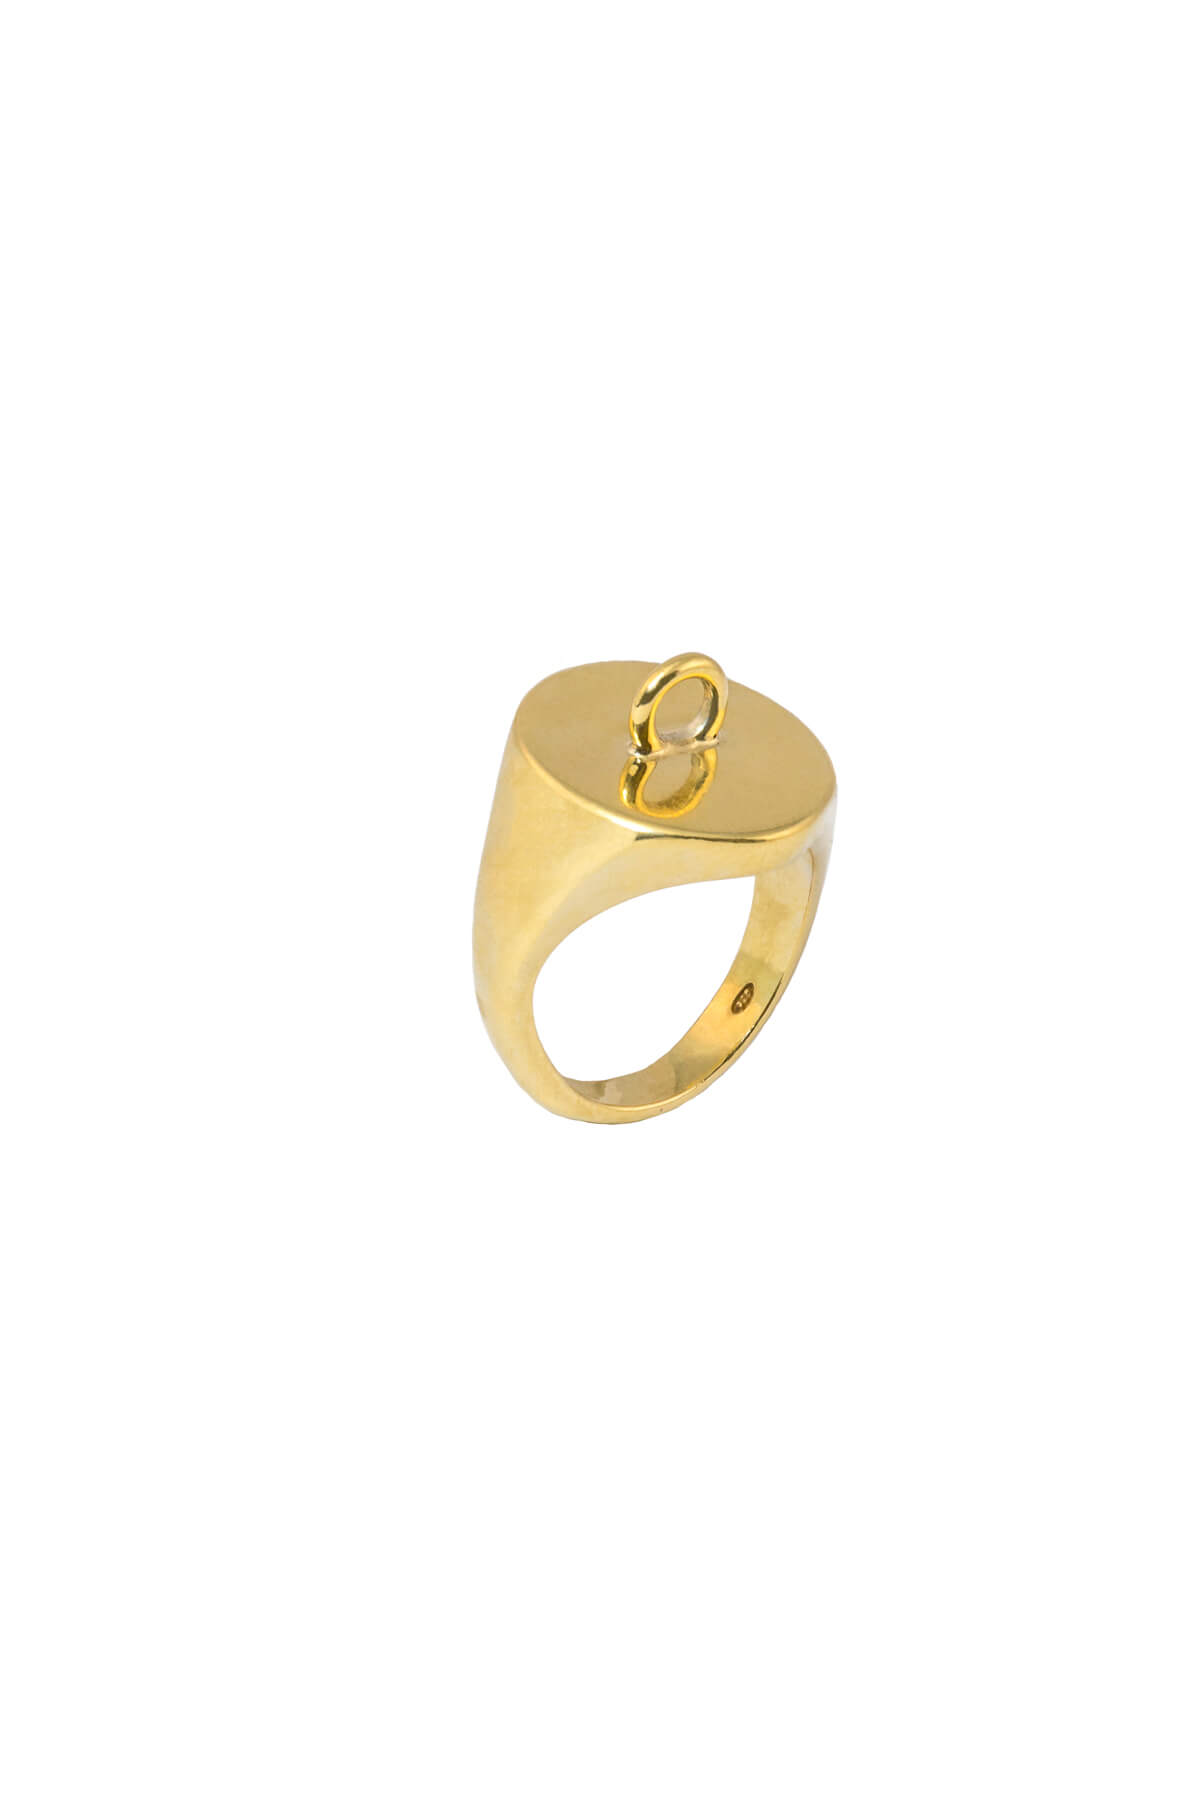 the-link-signet-ring-by-glenda-lopez-perspectiva